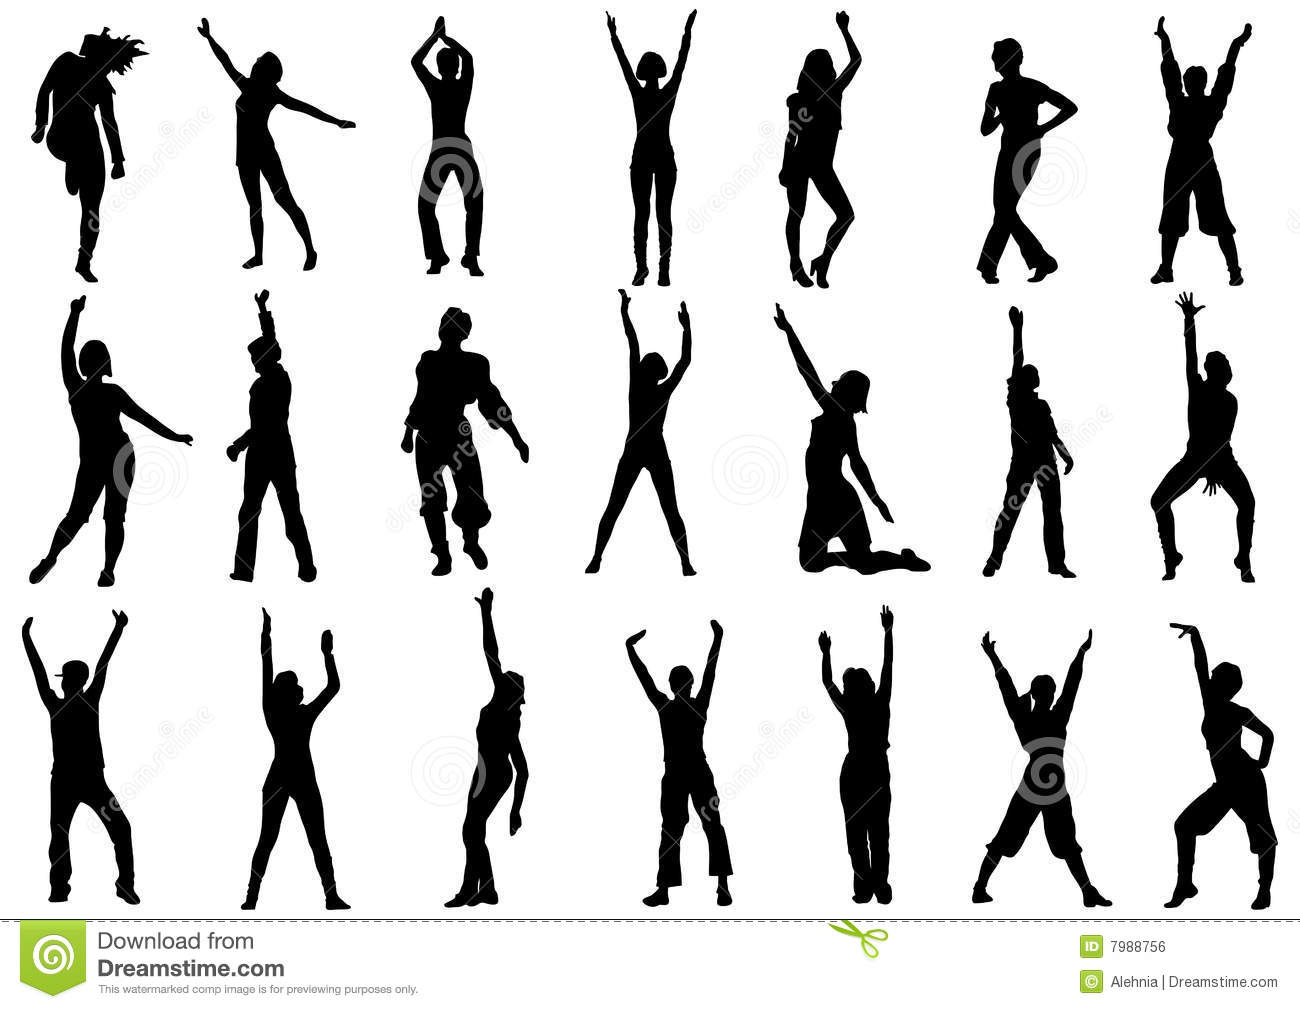 Dancing Girls In Action Illustration Royalty Free Stock